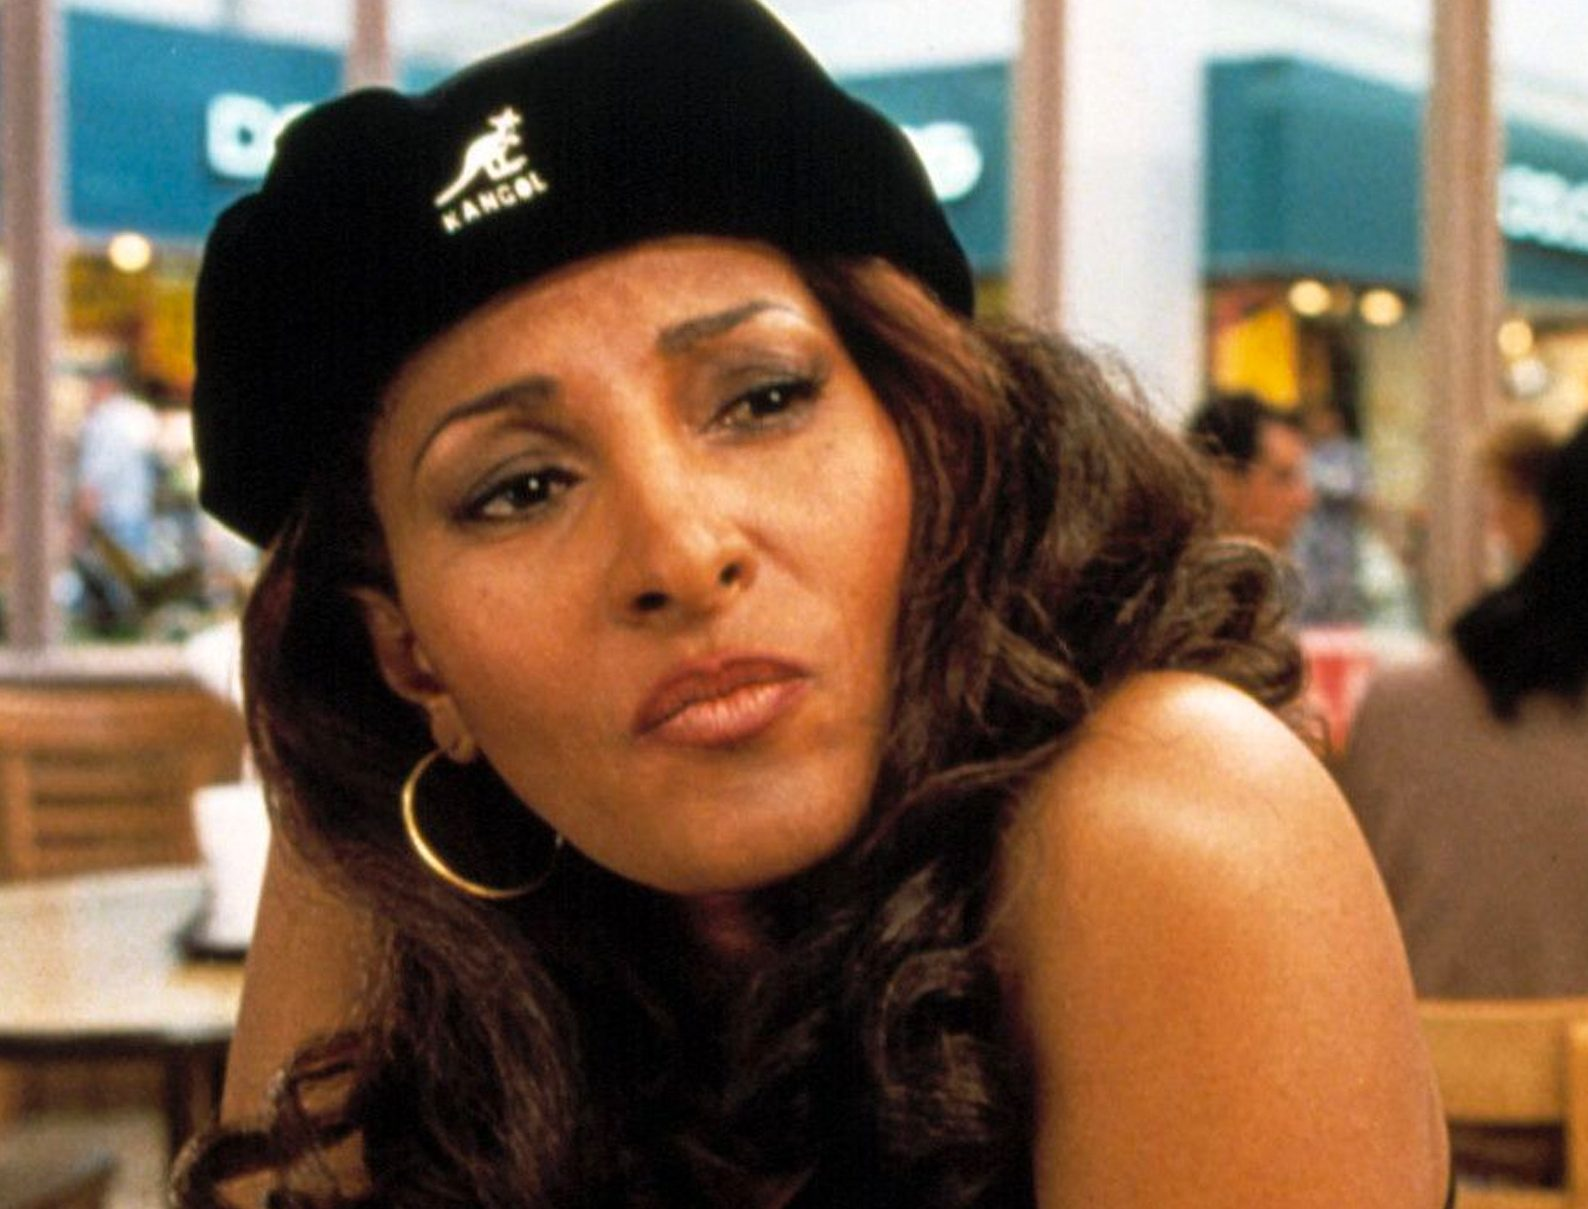 jackie brown thumb e1614775961495 30 Things You Probably Didn't Know About Jackie Brown